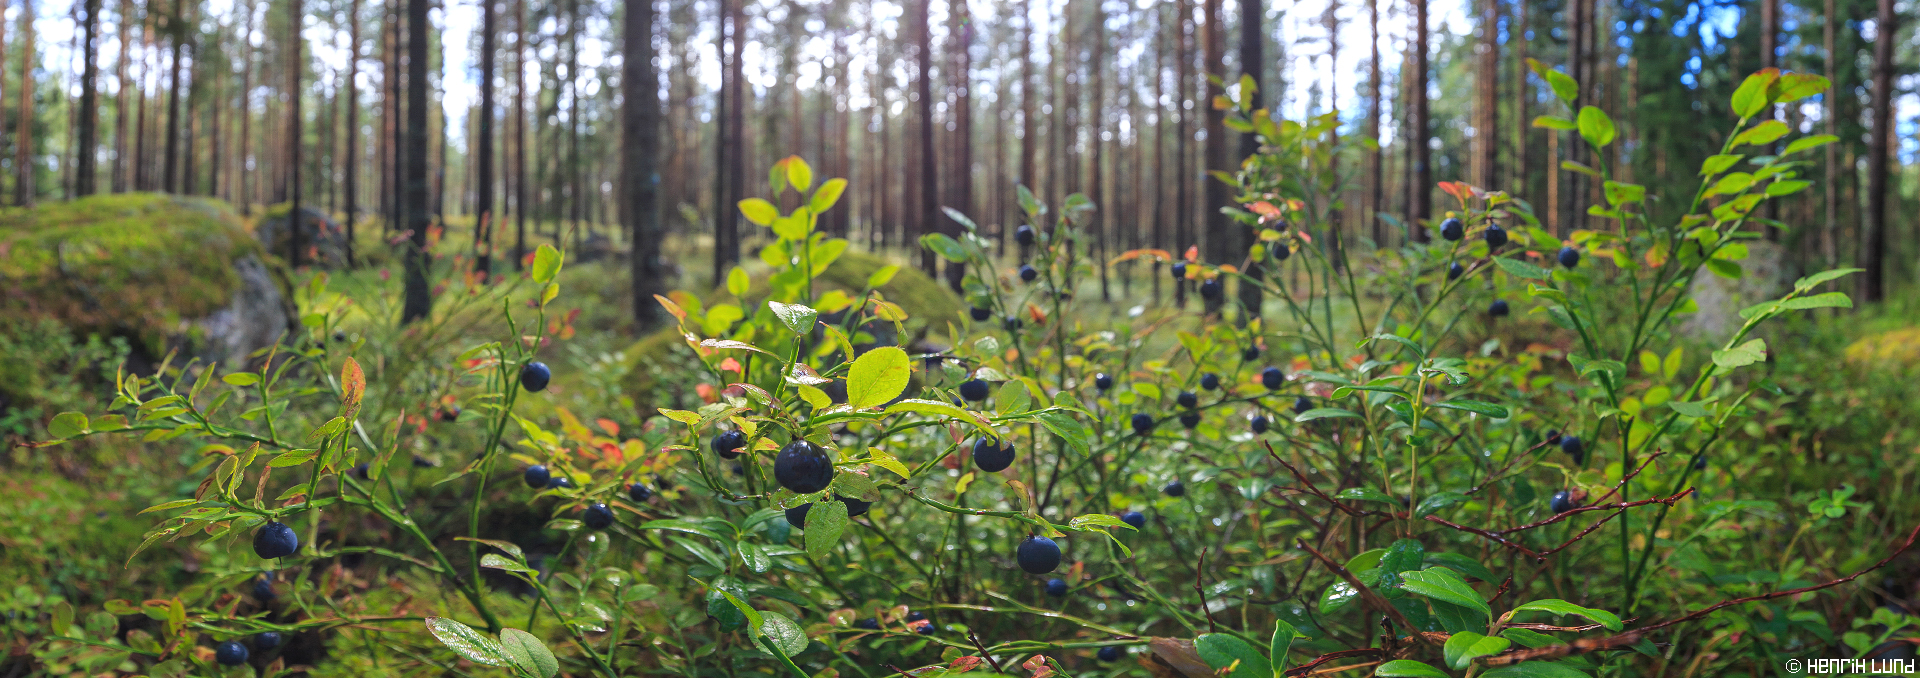 Panoramic view of the blueberry-forest, Korsmalm, Lappträsk, Finland. August, 2014